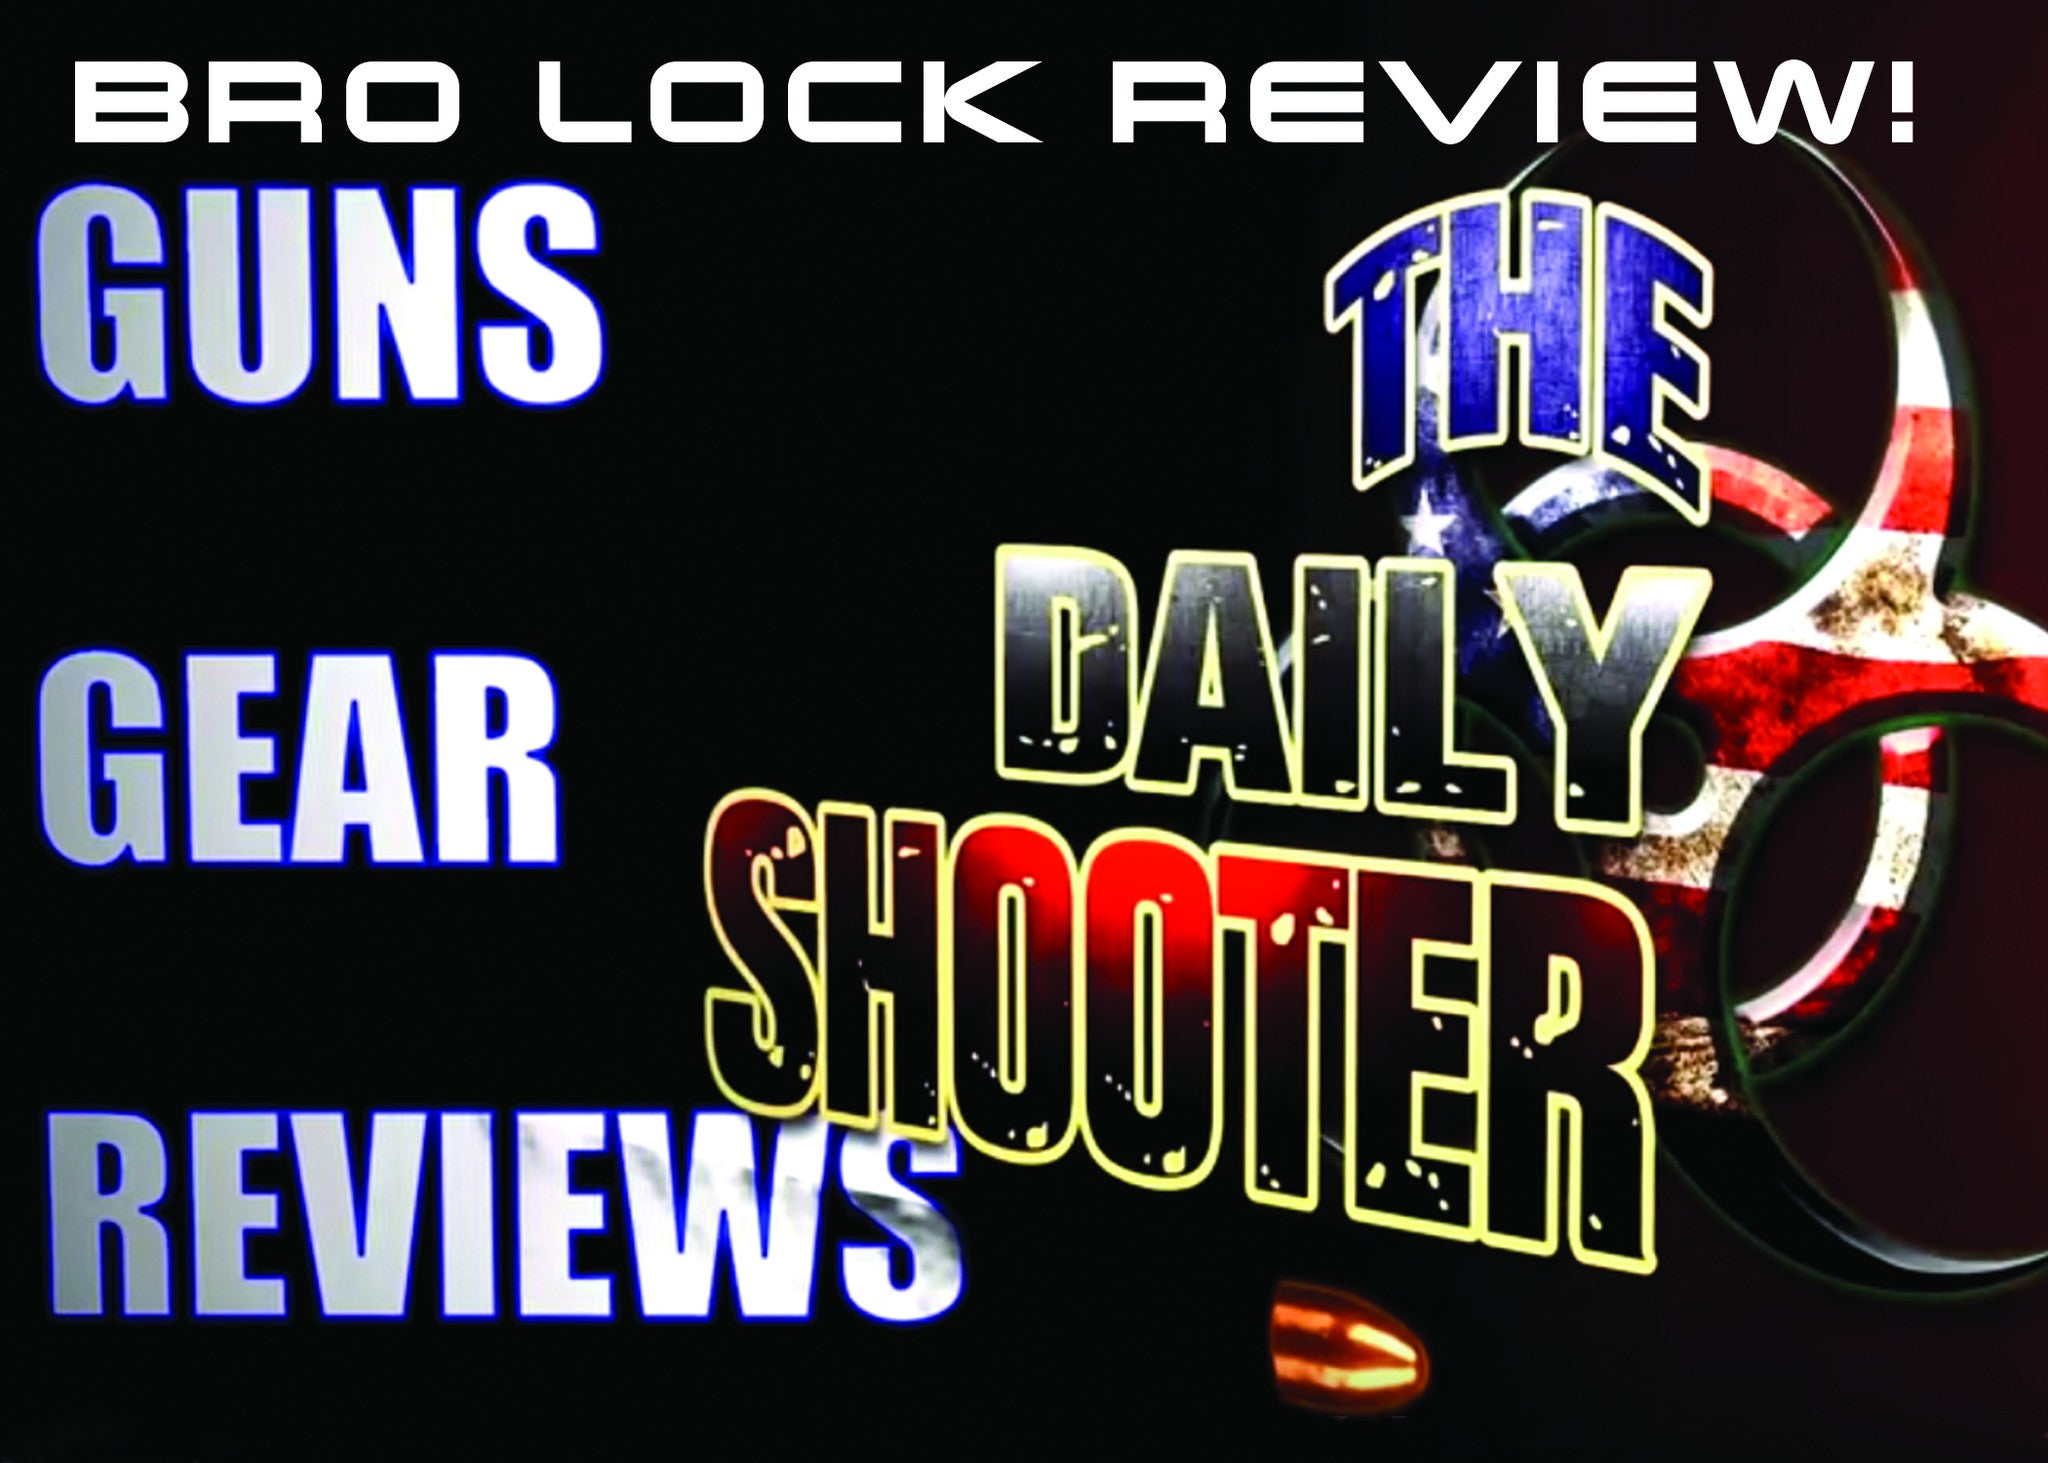 BRO LOCK REVIEW! FROM: THE DAILY SHOOTER!